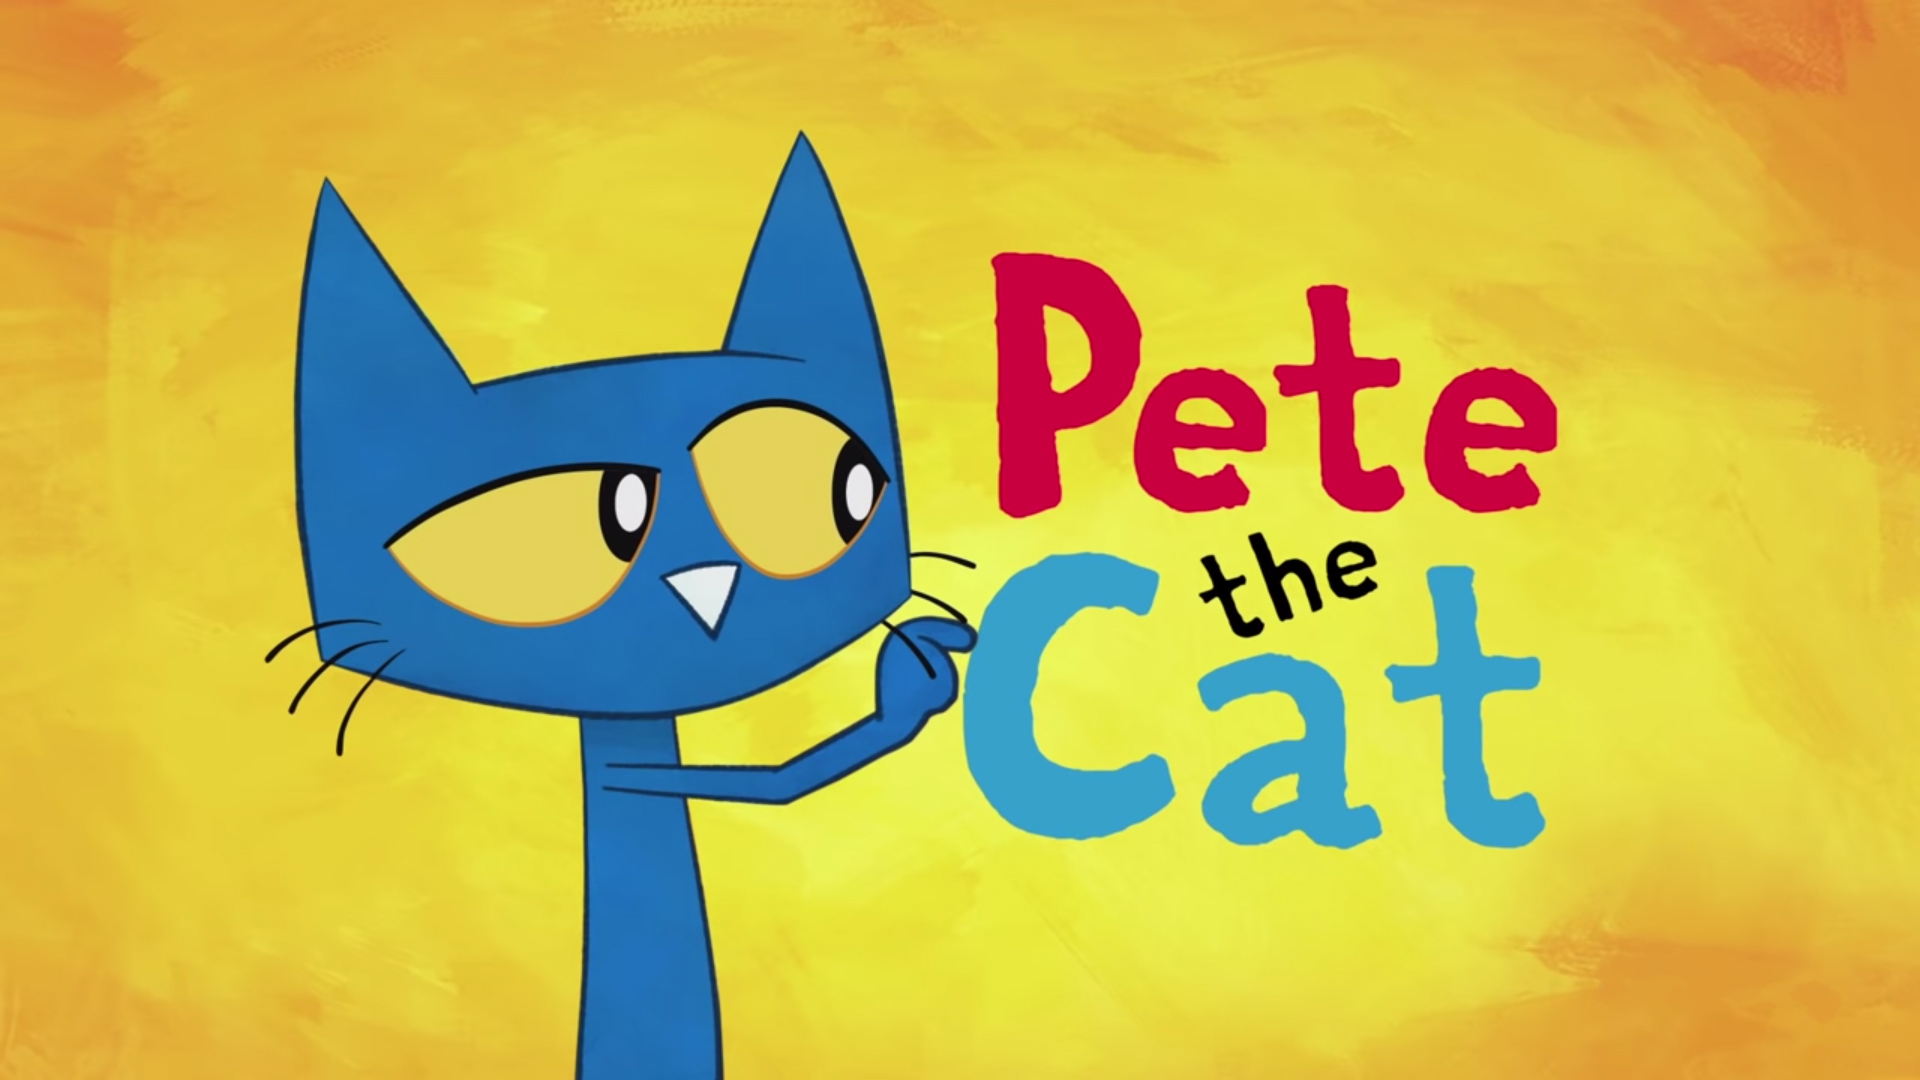 http://www.joachimloesener.com/wp-content/uploads/2018/10/Pete-the-Cat-Season-1-Part-1-Trailer-Prime-Video-Kids-2.mp4